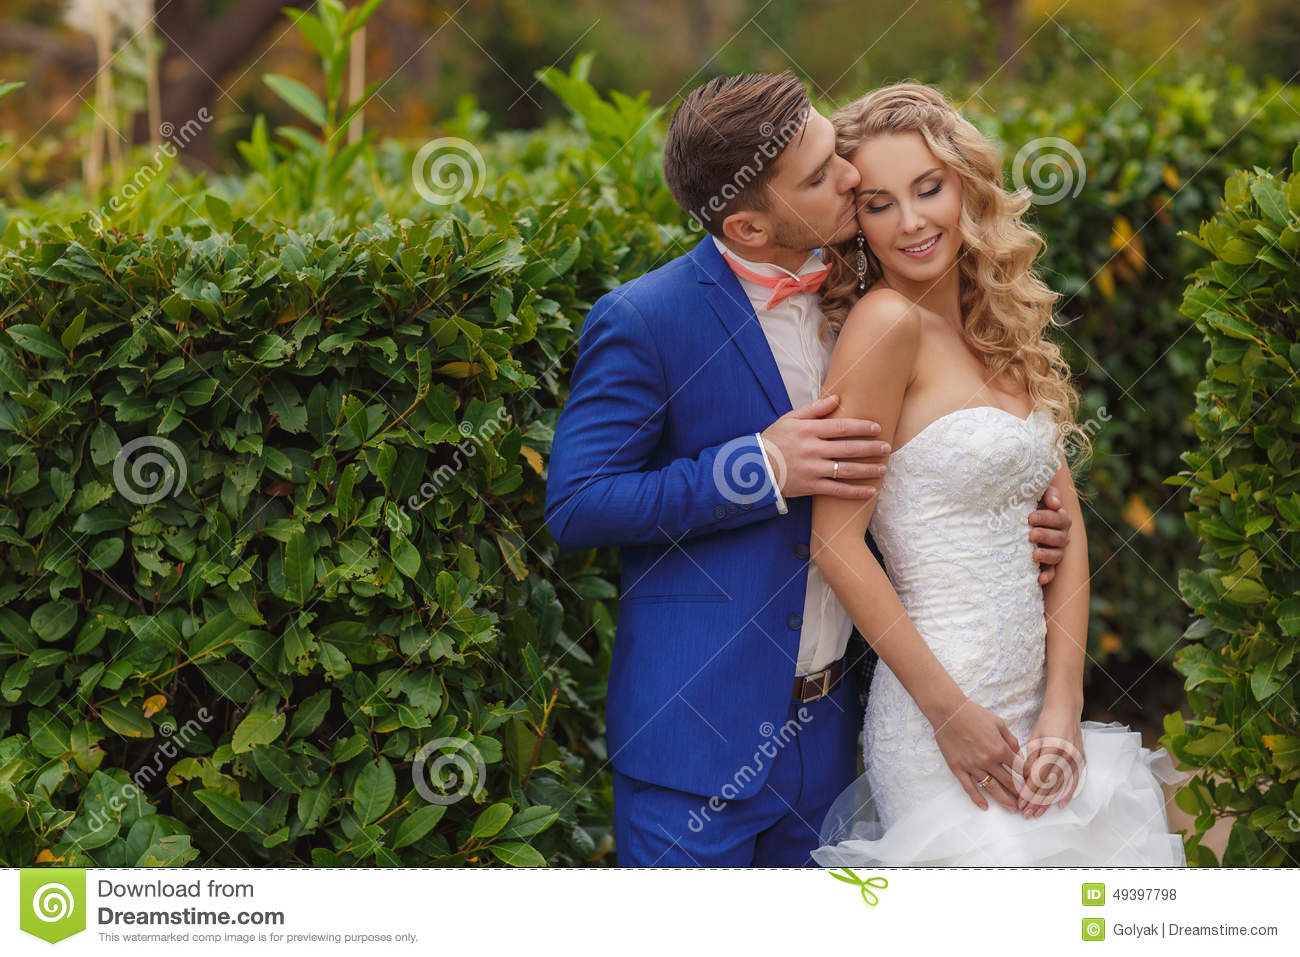 The Groom Kisses The Bride In A Green Park In The Summer. Stock ...